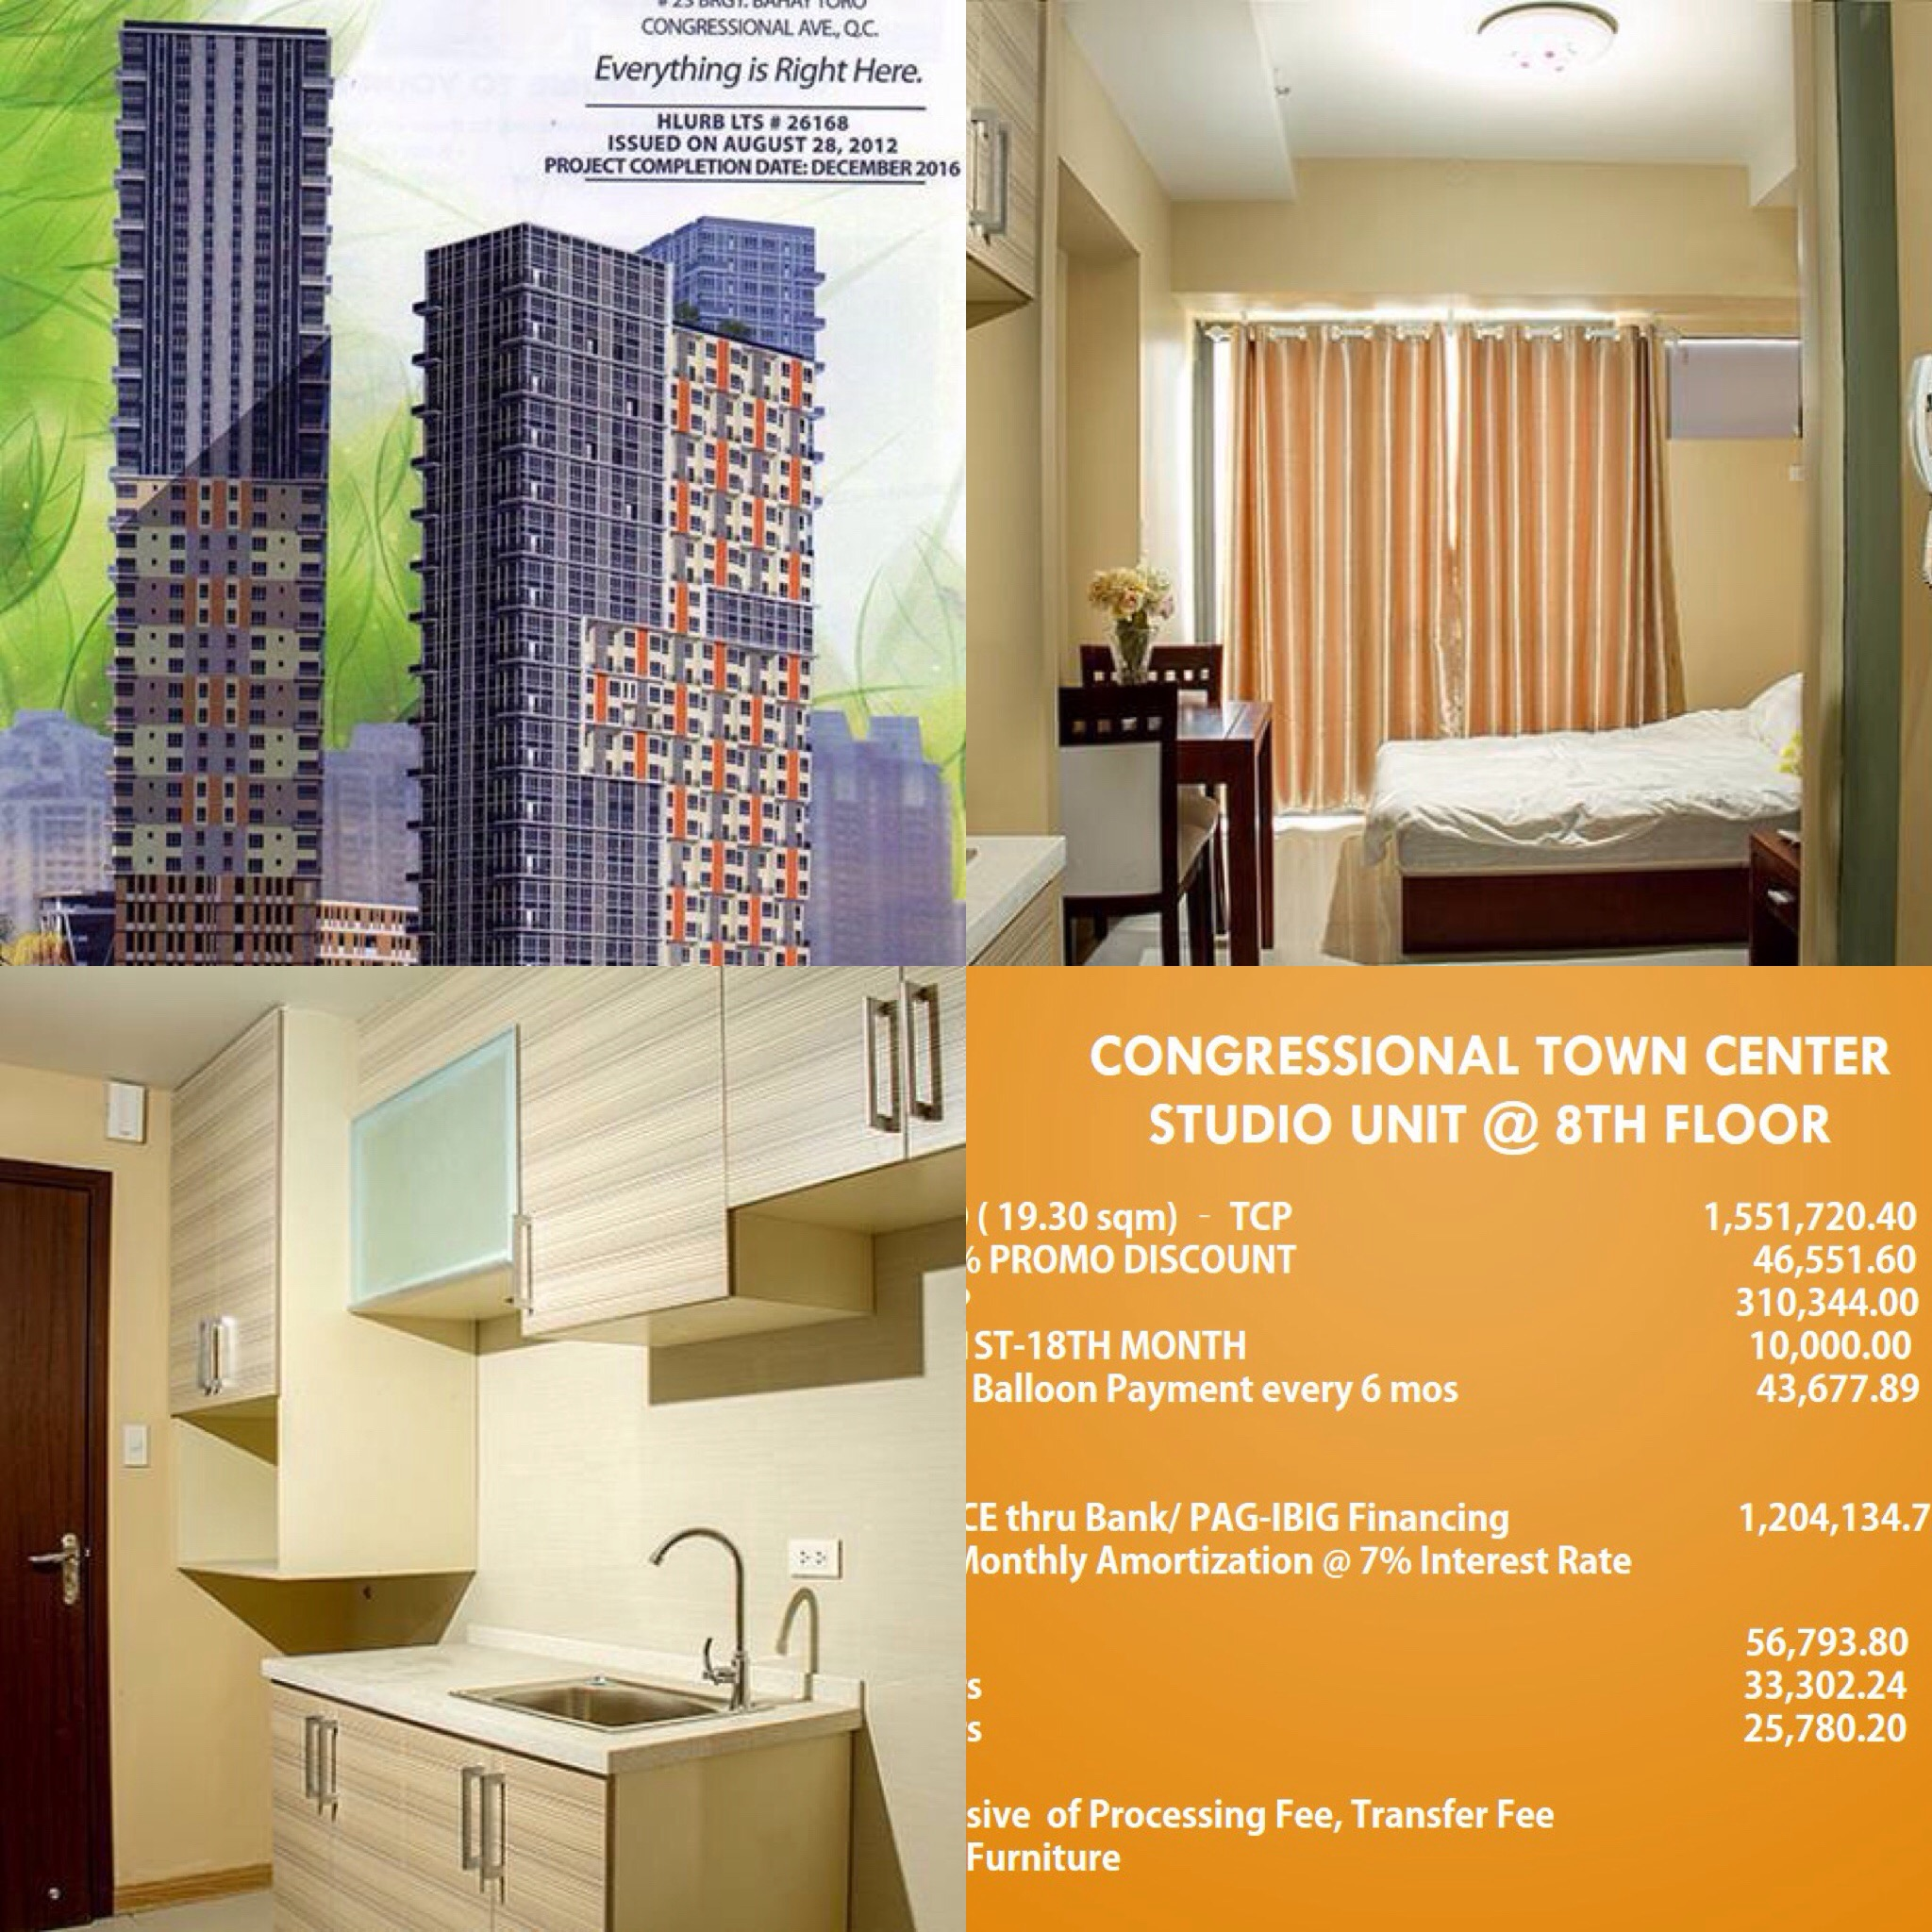 congressional ave condo qc for sale 00176747343 rico navarro